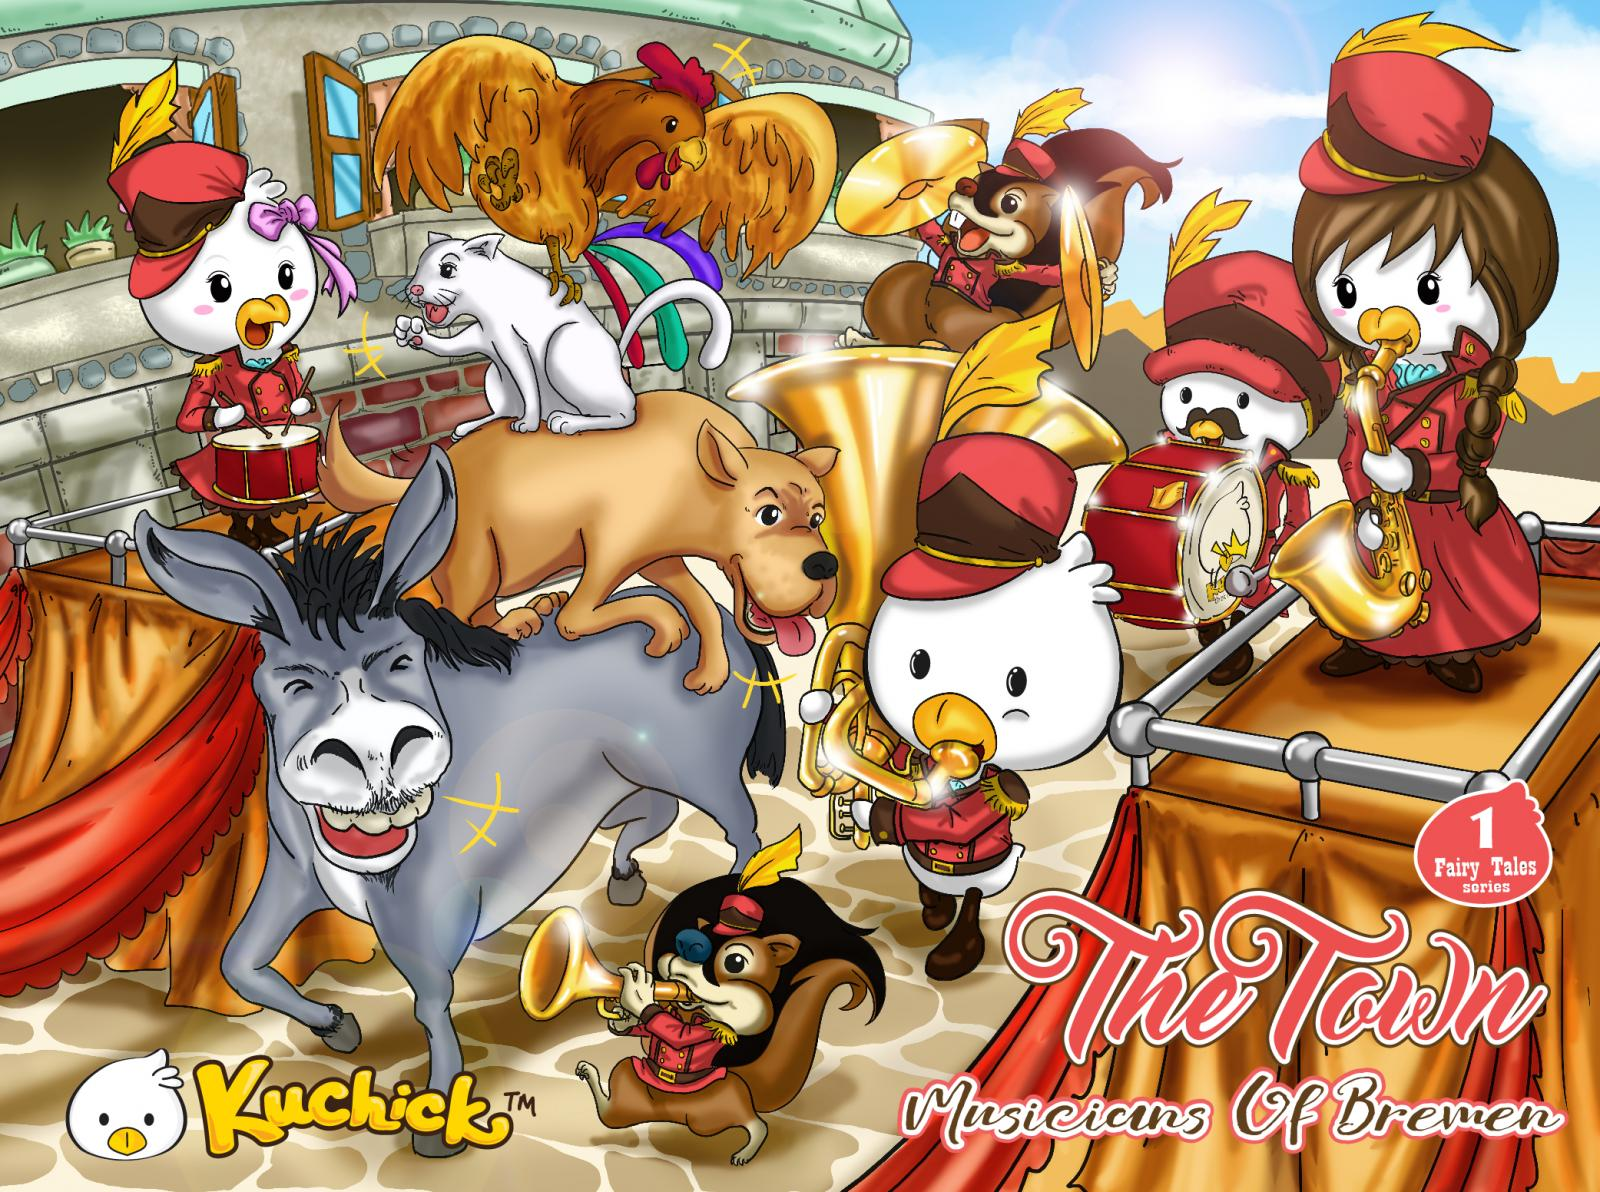 Kuchick  Fairy Tales Series 1 -The town musicians of bremen